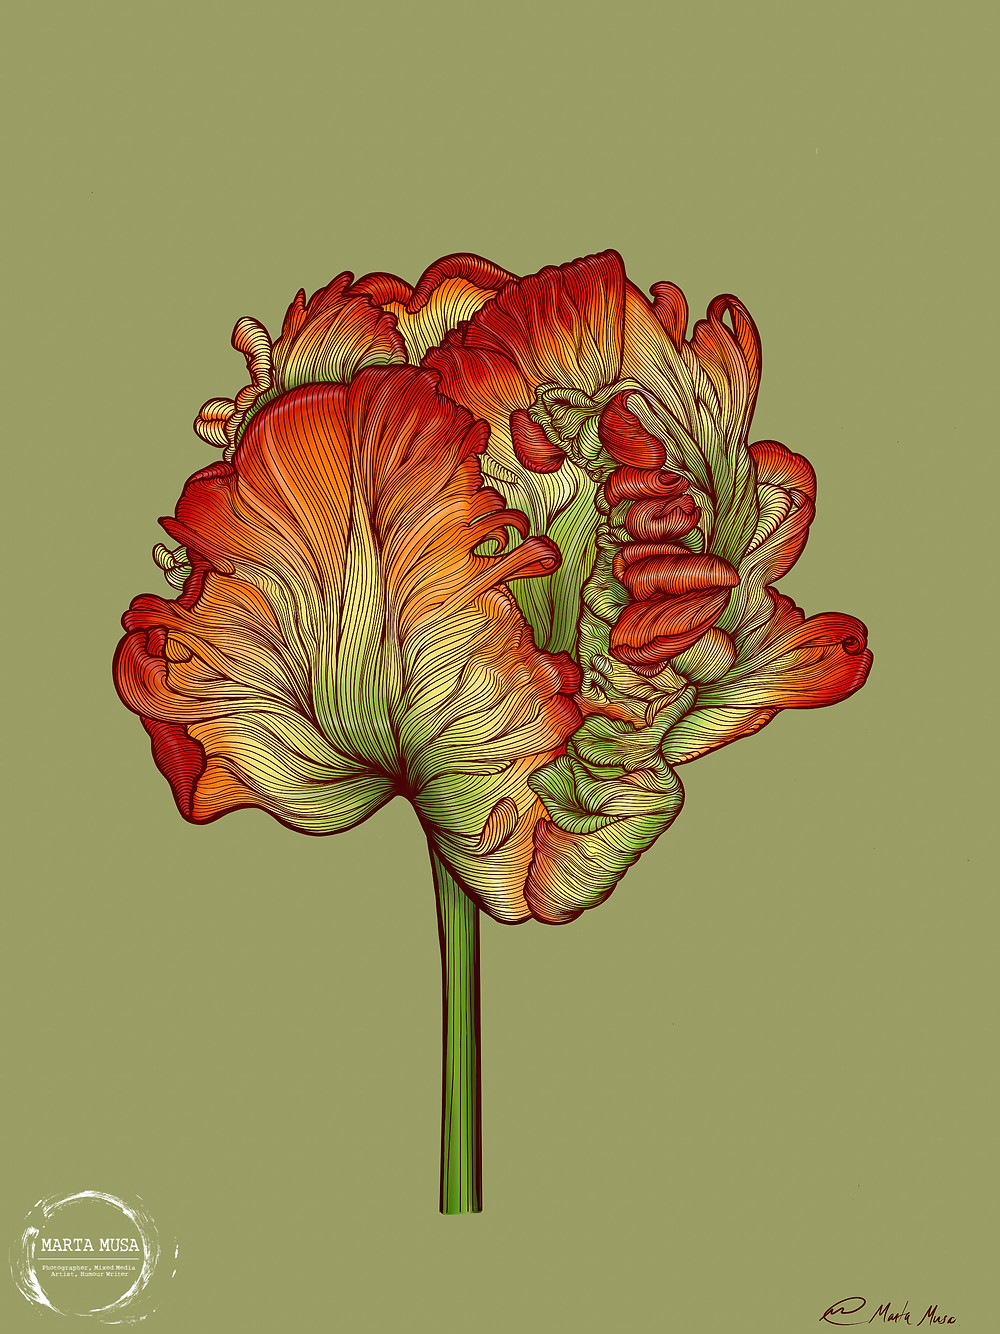 Contour line drawing of a single ruffled parrot tulip against a light olive green background.  The individual ruffled tulip pettals are painted in a gradient from light green at the base, to a bright light yellow, then bright orange, ending at the petal tips in a bright fiery red.  The tulip stem is green